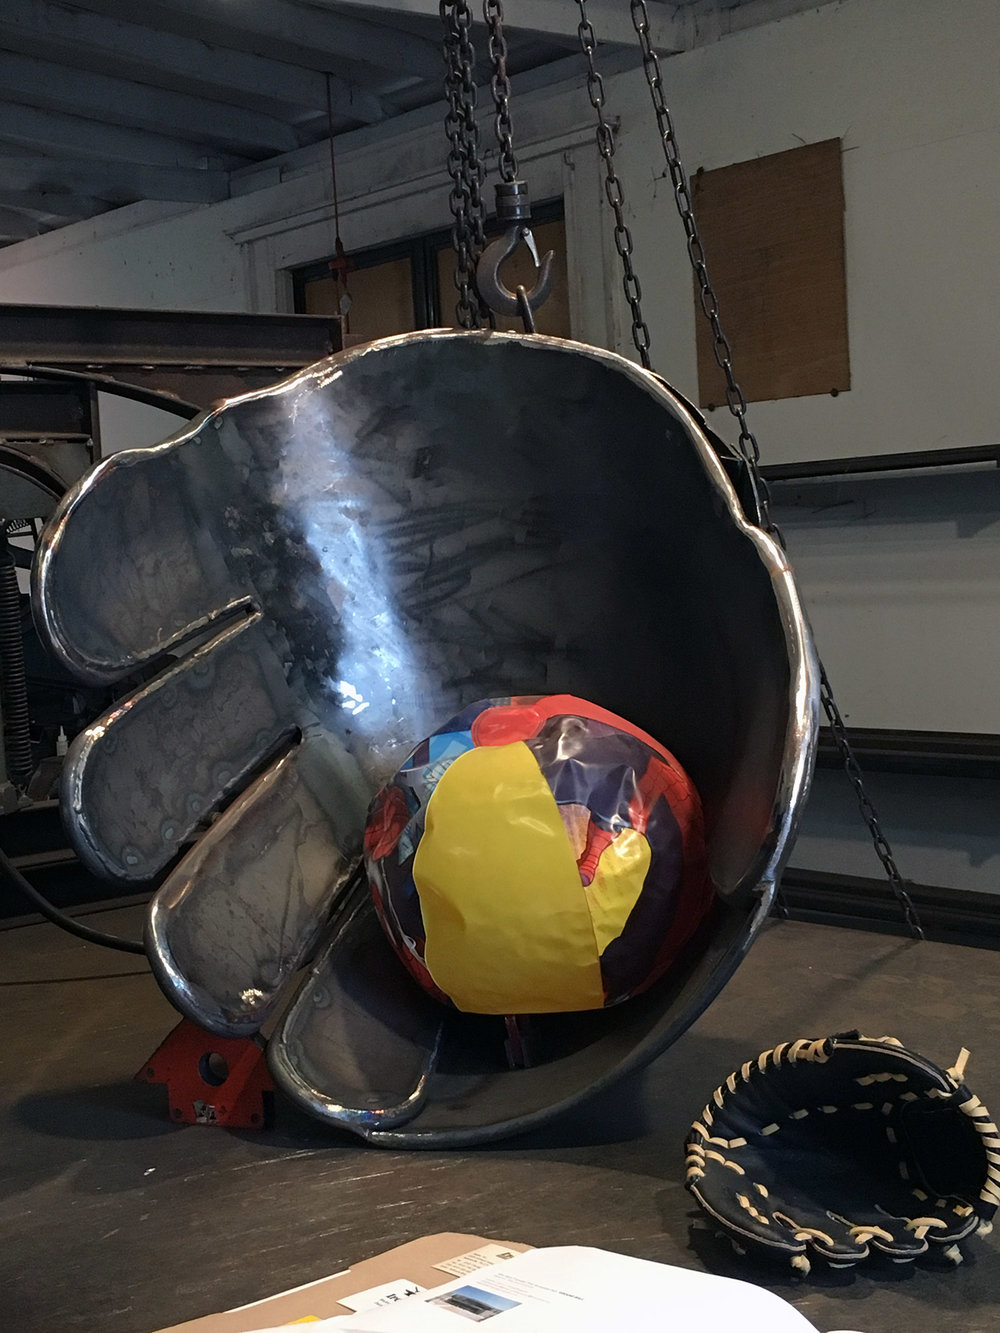 Fabrication with beach ball standing in for 12 inch steel baseball